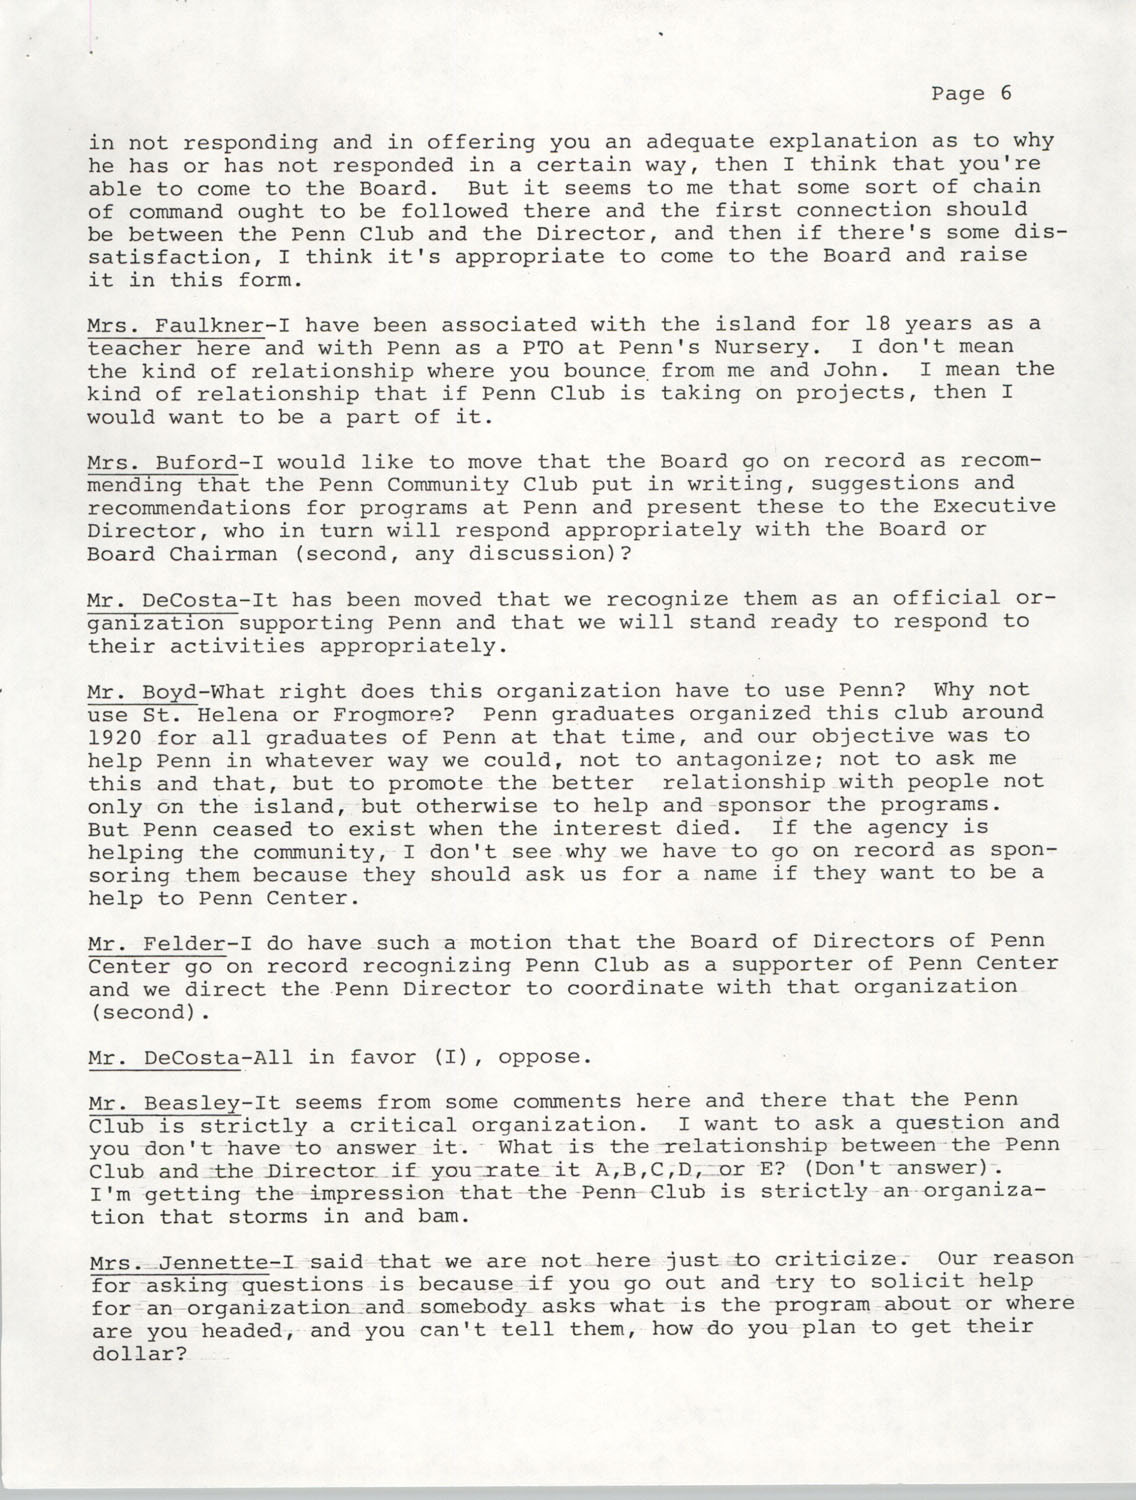 Minutes, Annual Board Meeting, Penn Community Services, October 22, 1977, Page 6